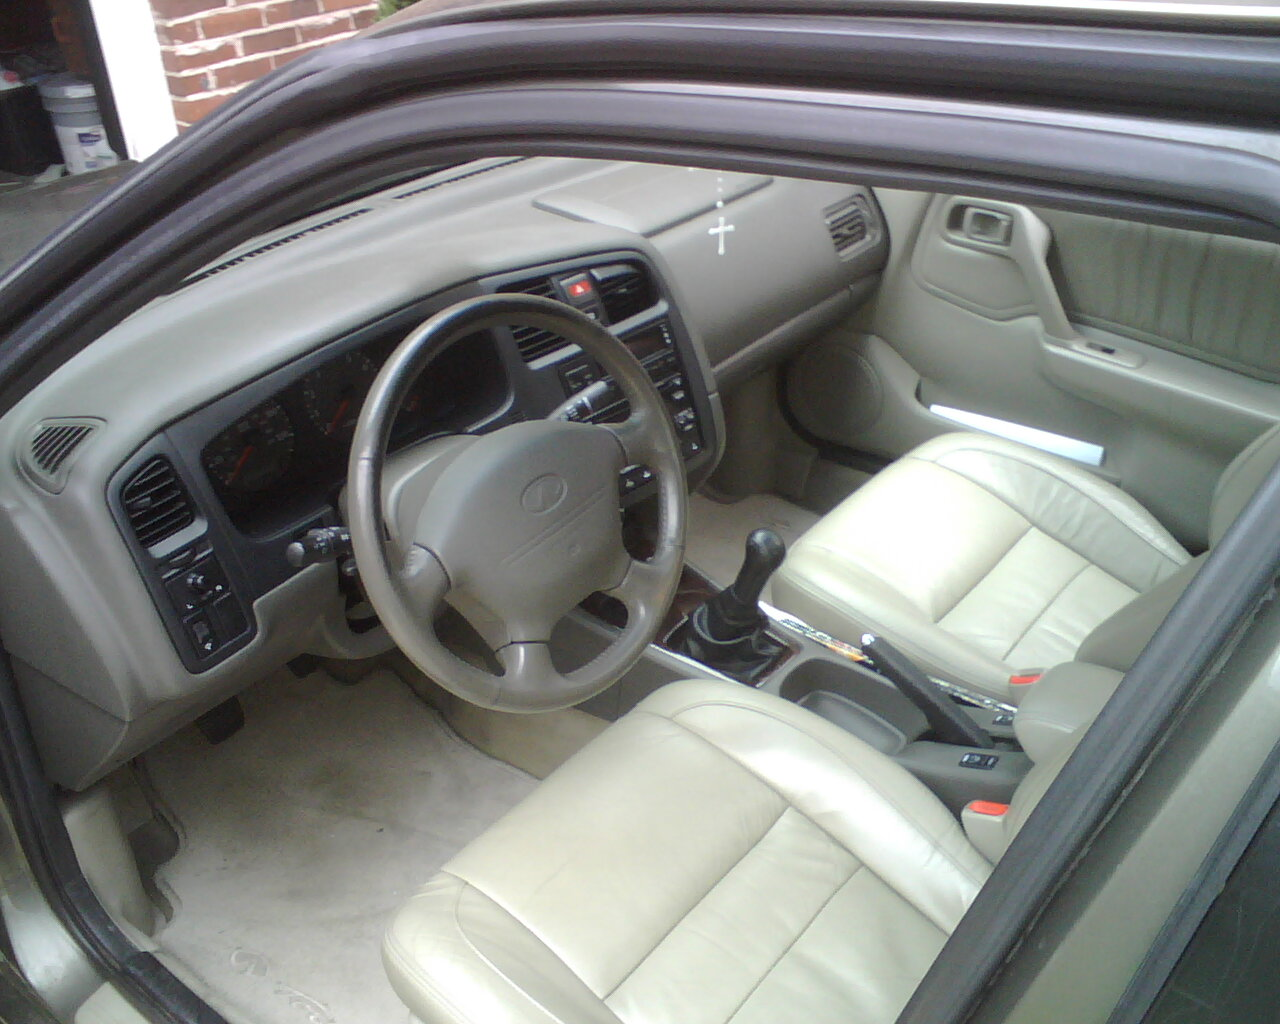 2000 infiniti g20 interior pictures cargurus. Black Bedroom Furniture Sets. Home Design Ideas